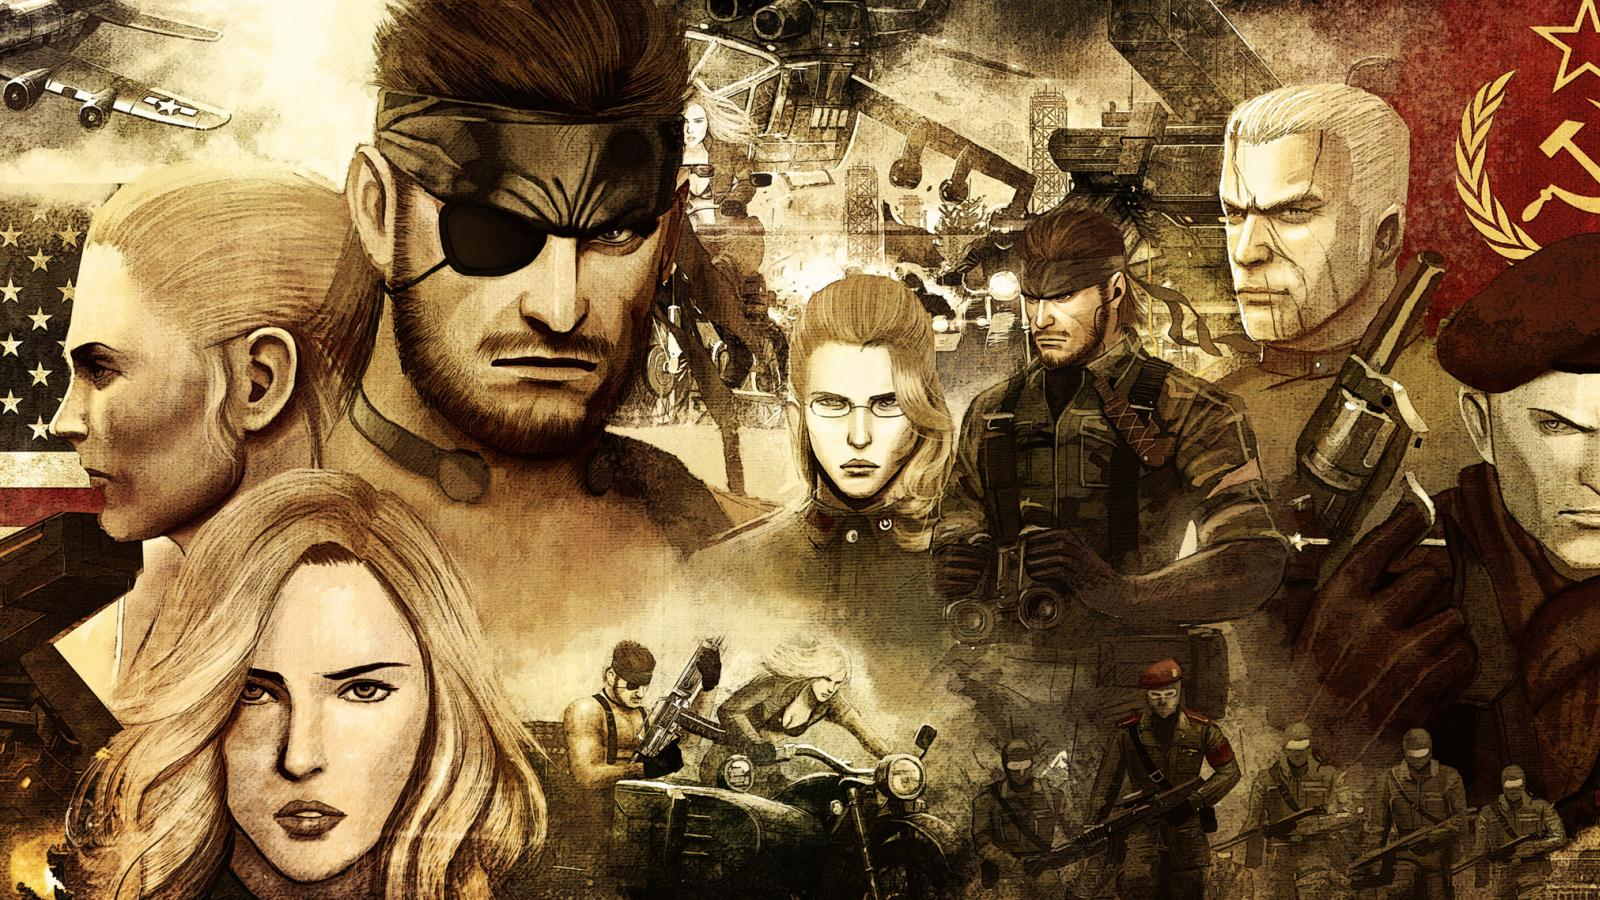 Fantastic Collection of Metal Gear Solid Fan Art